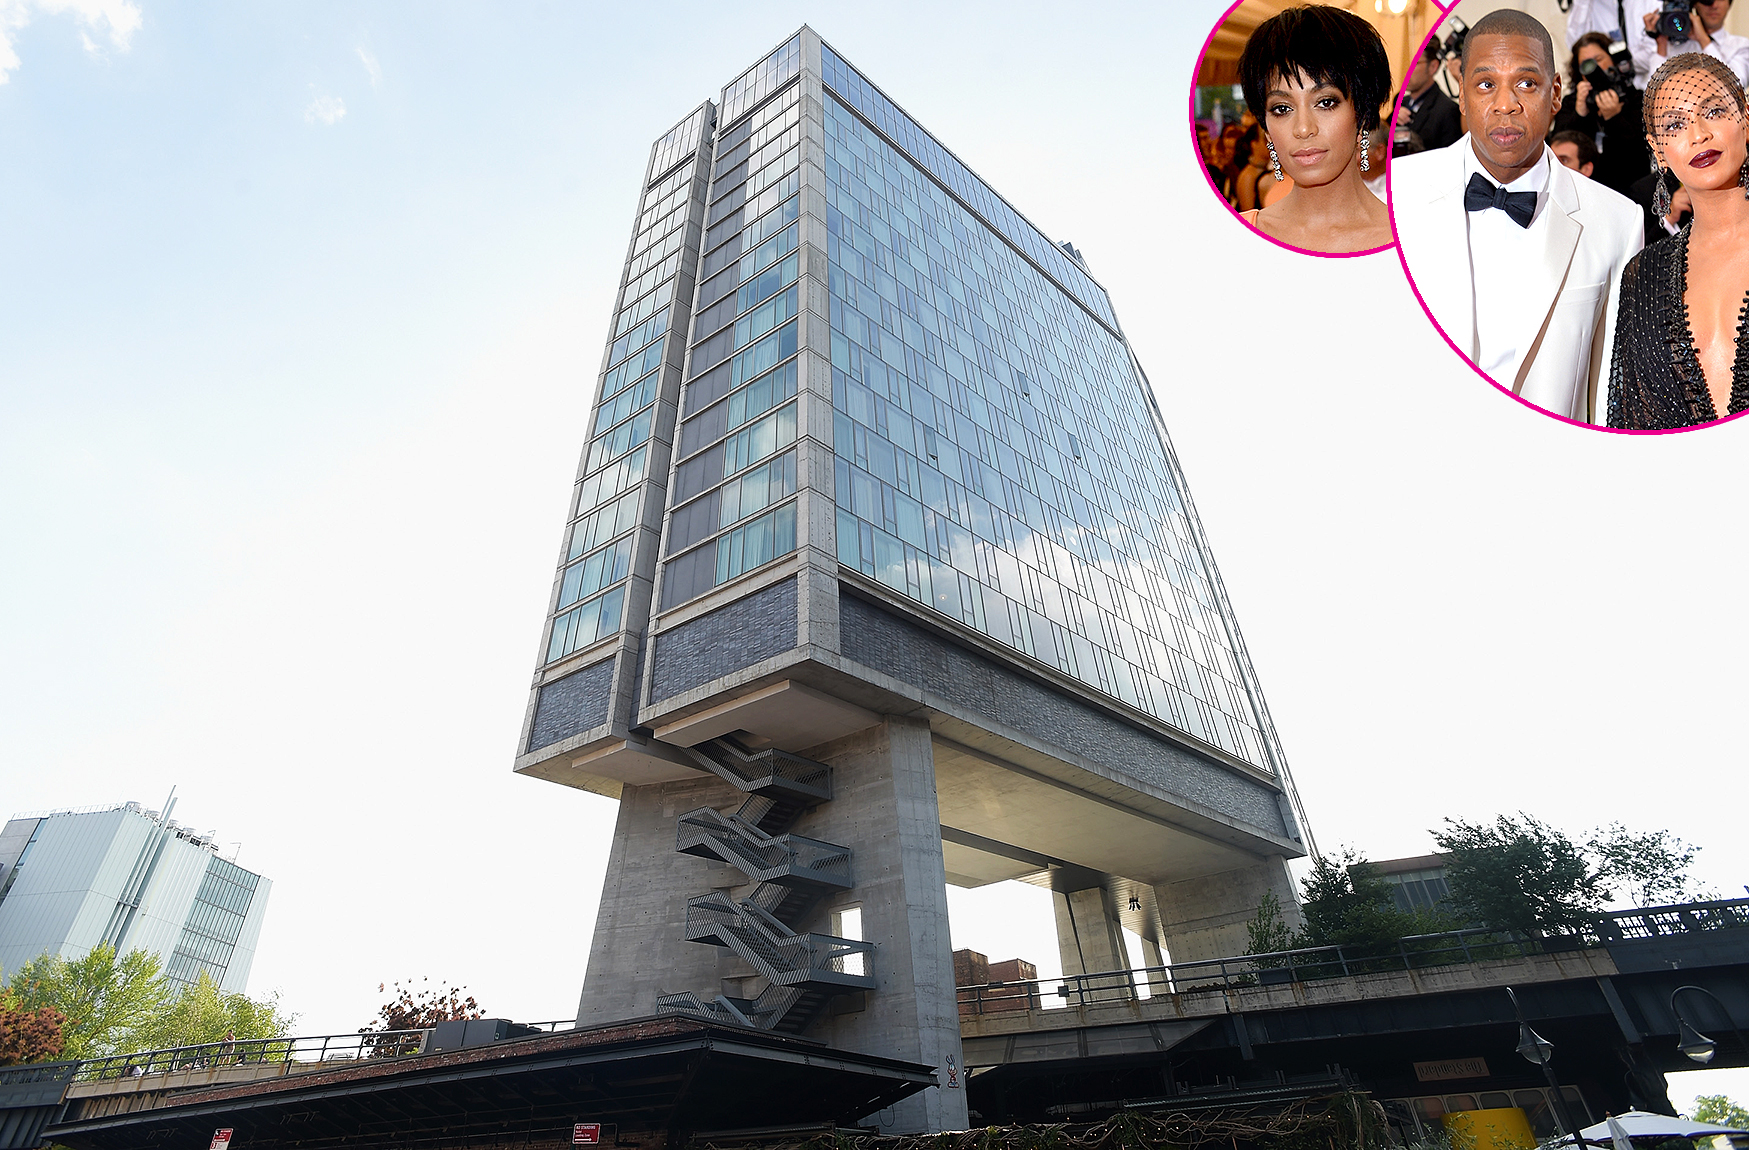 the-standard-solange-bey-jay - The penthouse lounge at the top of the hotel rolled out the red carpet for stars such as Beyoncé , Jay-Z , Solange Knowles , Frank Ocean and Emma Stone . Solange infamously attacked brother-in-law Jay-Z in an elevator at the party in a headline-making incident that was caught on video.